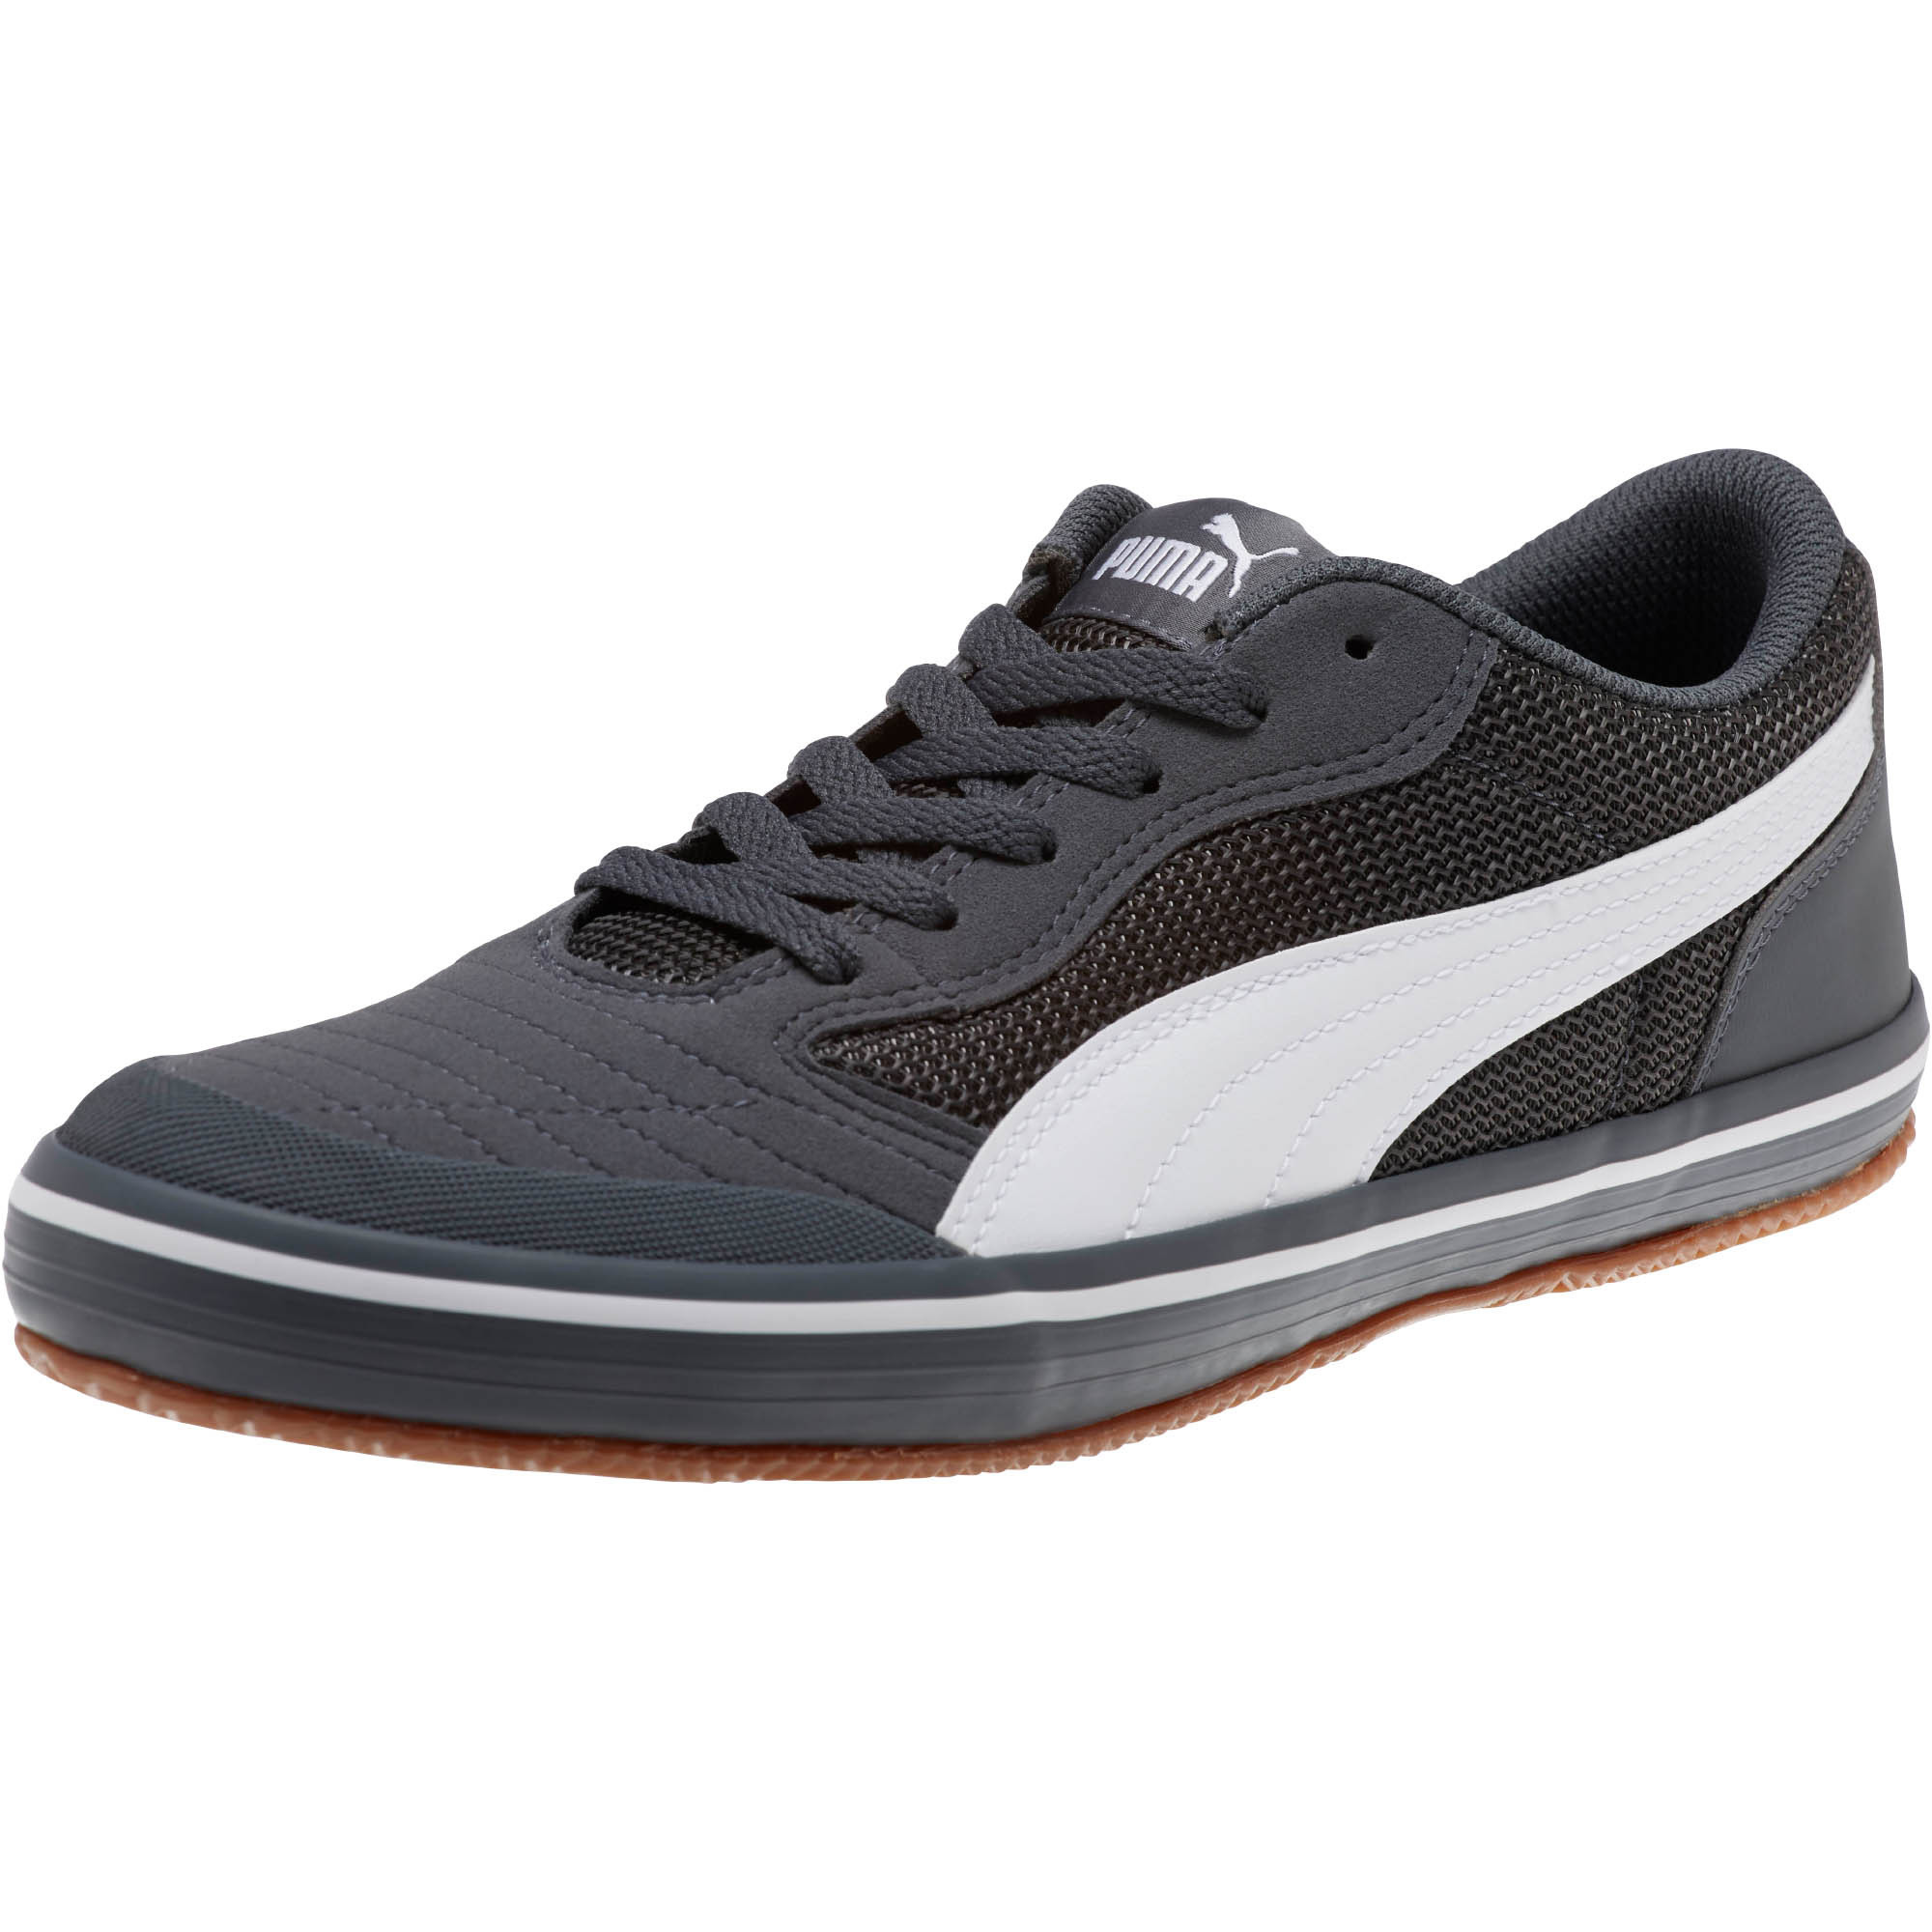 PUMA-Men-039-s-Astro-Sala-Sneakers thumbnail 4